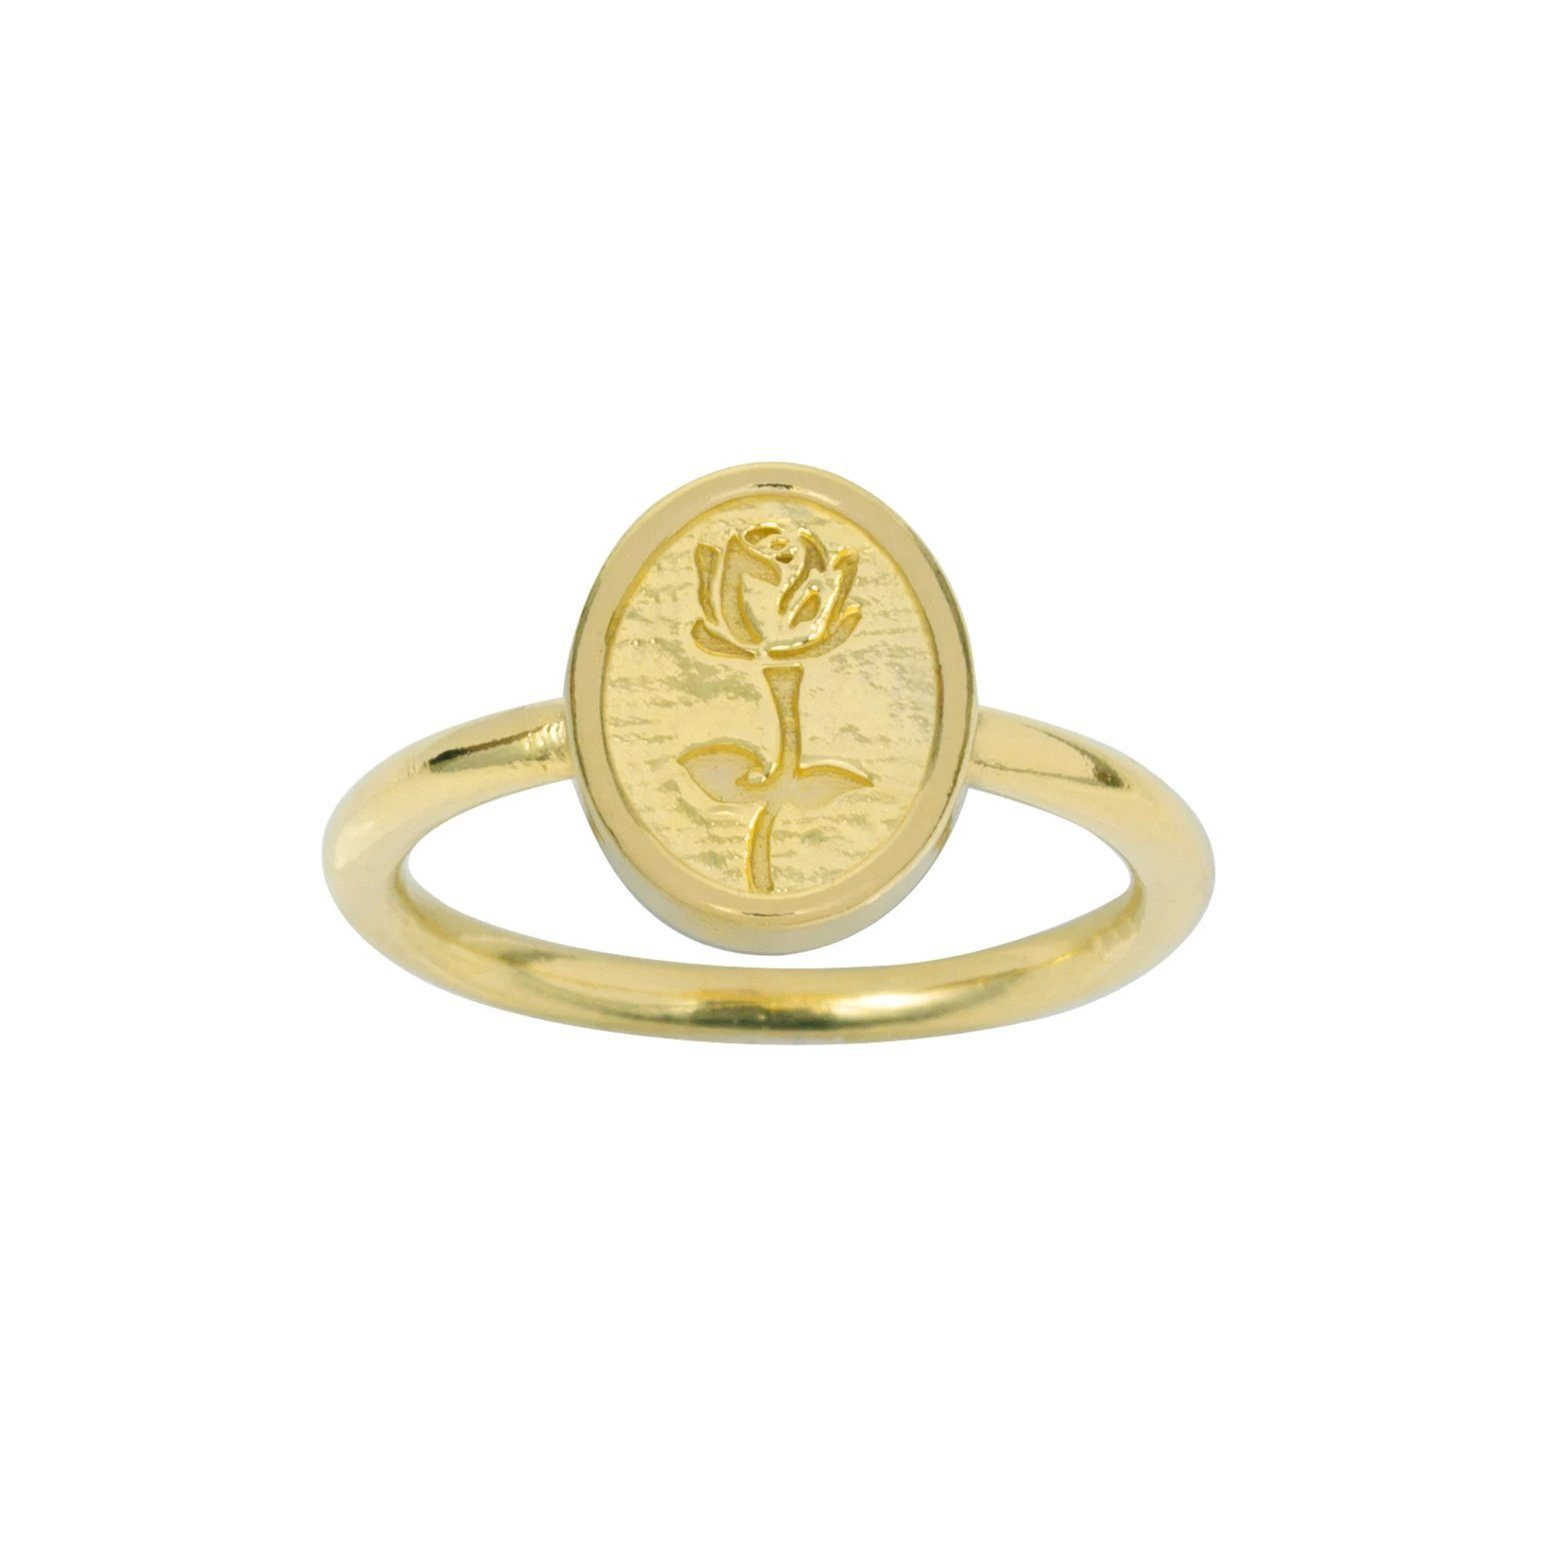 Up close image of the gold Rose Ring with a rose on it.